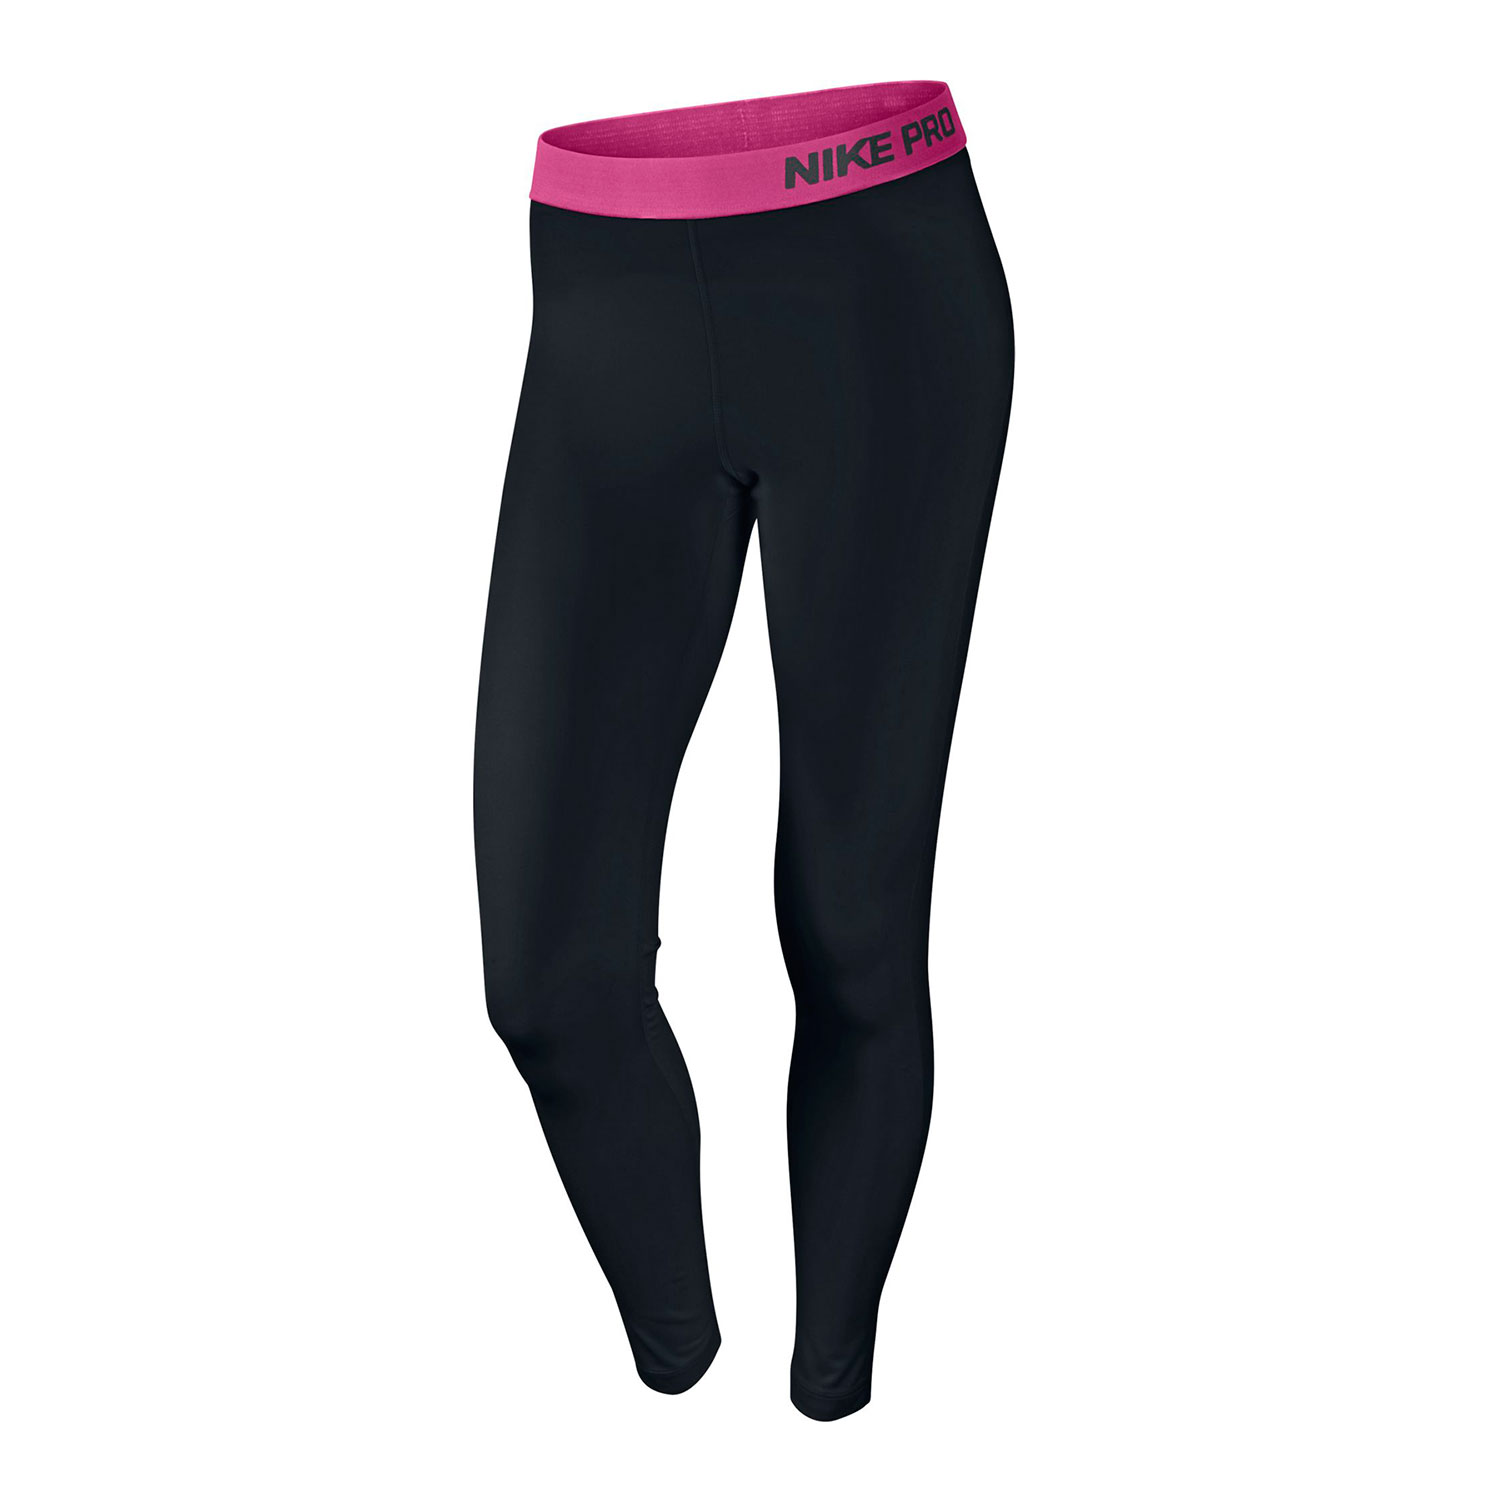 Womens Compression Pants  Reviews and Recommendations 31a6378c5